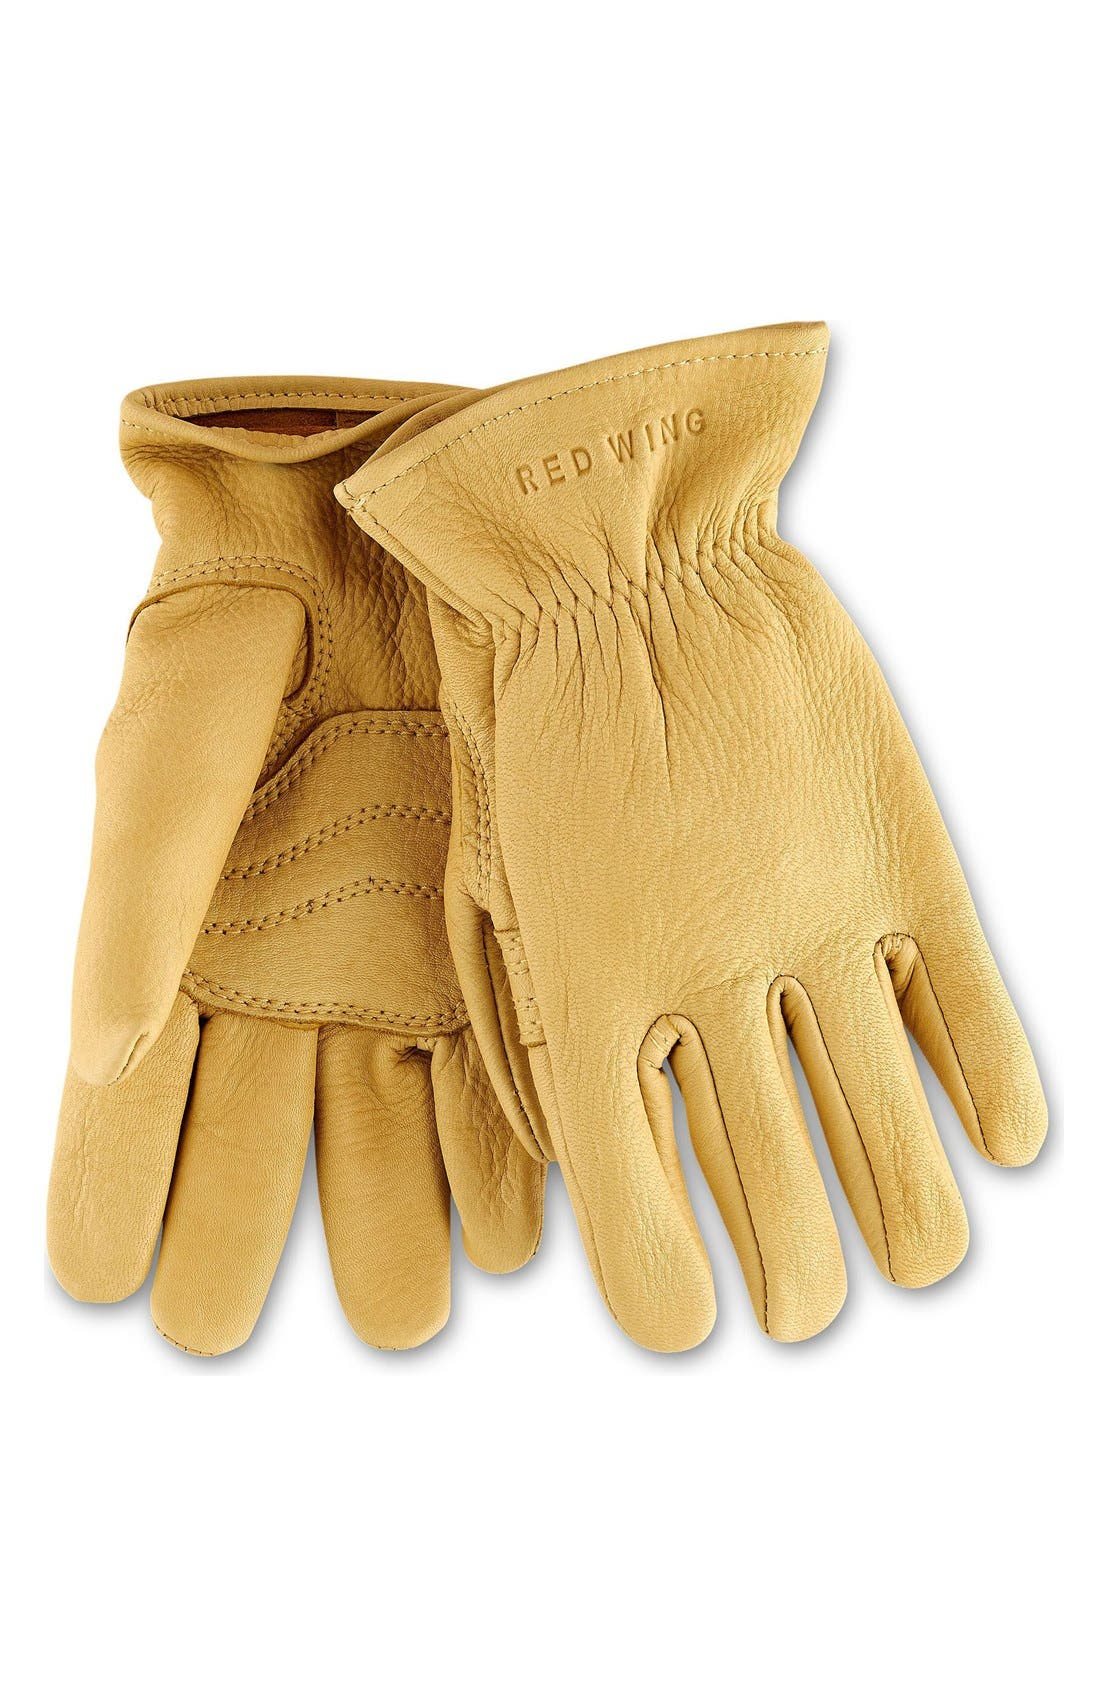 Buckskin Leather Gloves,                             Main thumbnail 1, color,                             Yellow